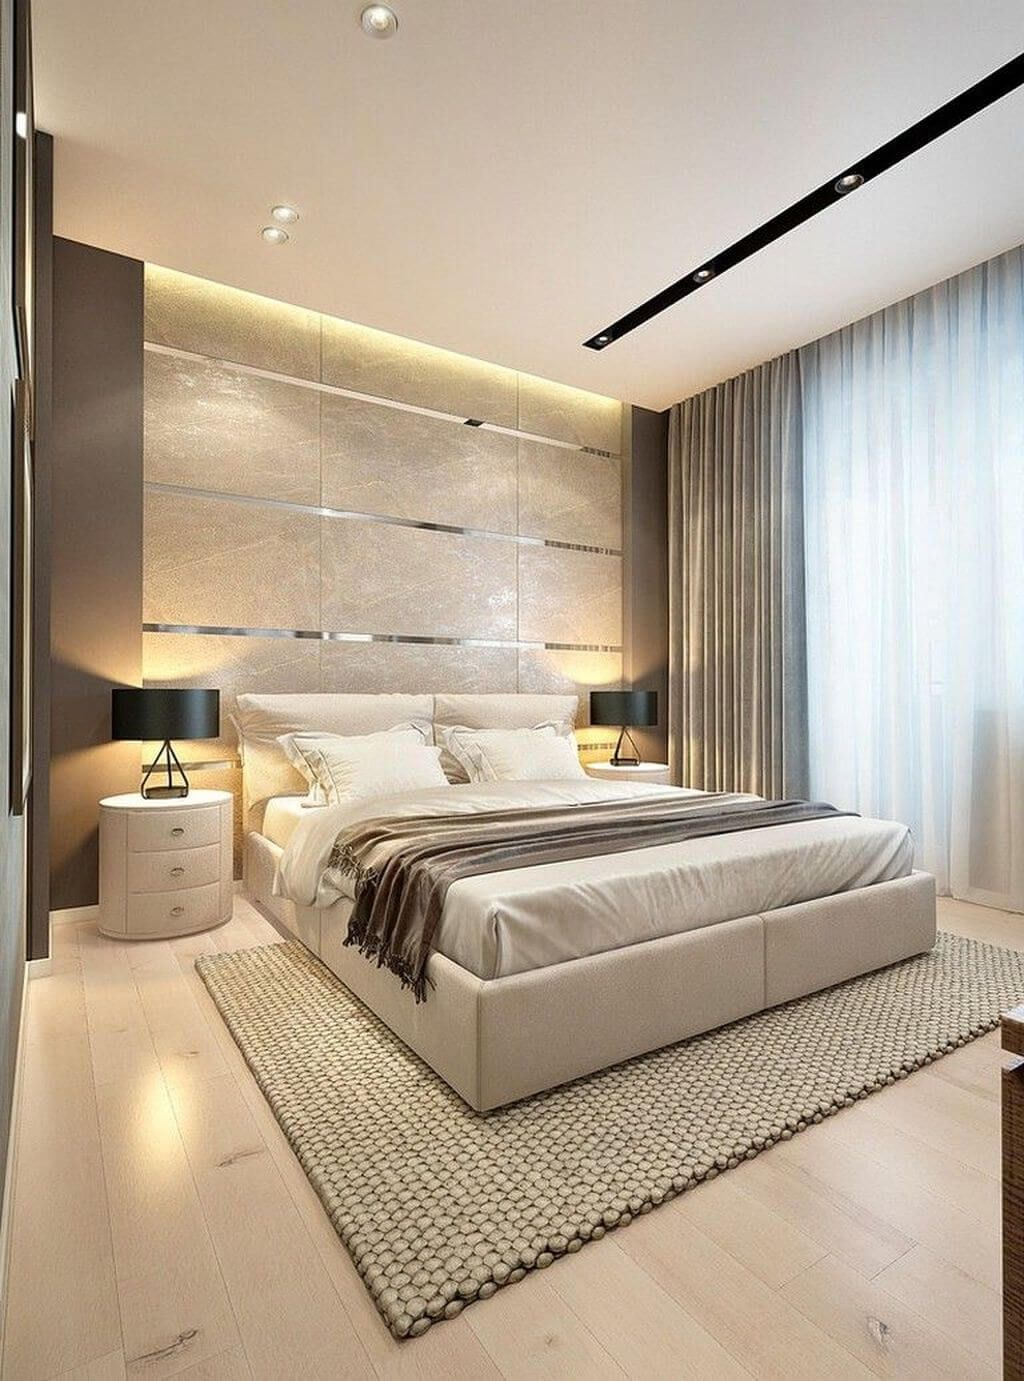 Incredible Modern Bedroom Design Ideas Engineering Discoveries In 2020 Luxurious Bedrooms Contemporary Bedroom Design Minimalist Bedroom Design